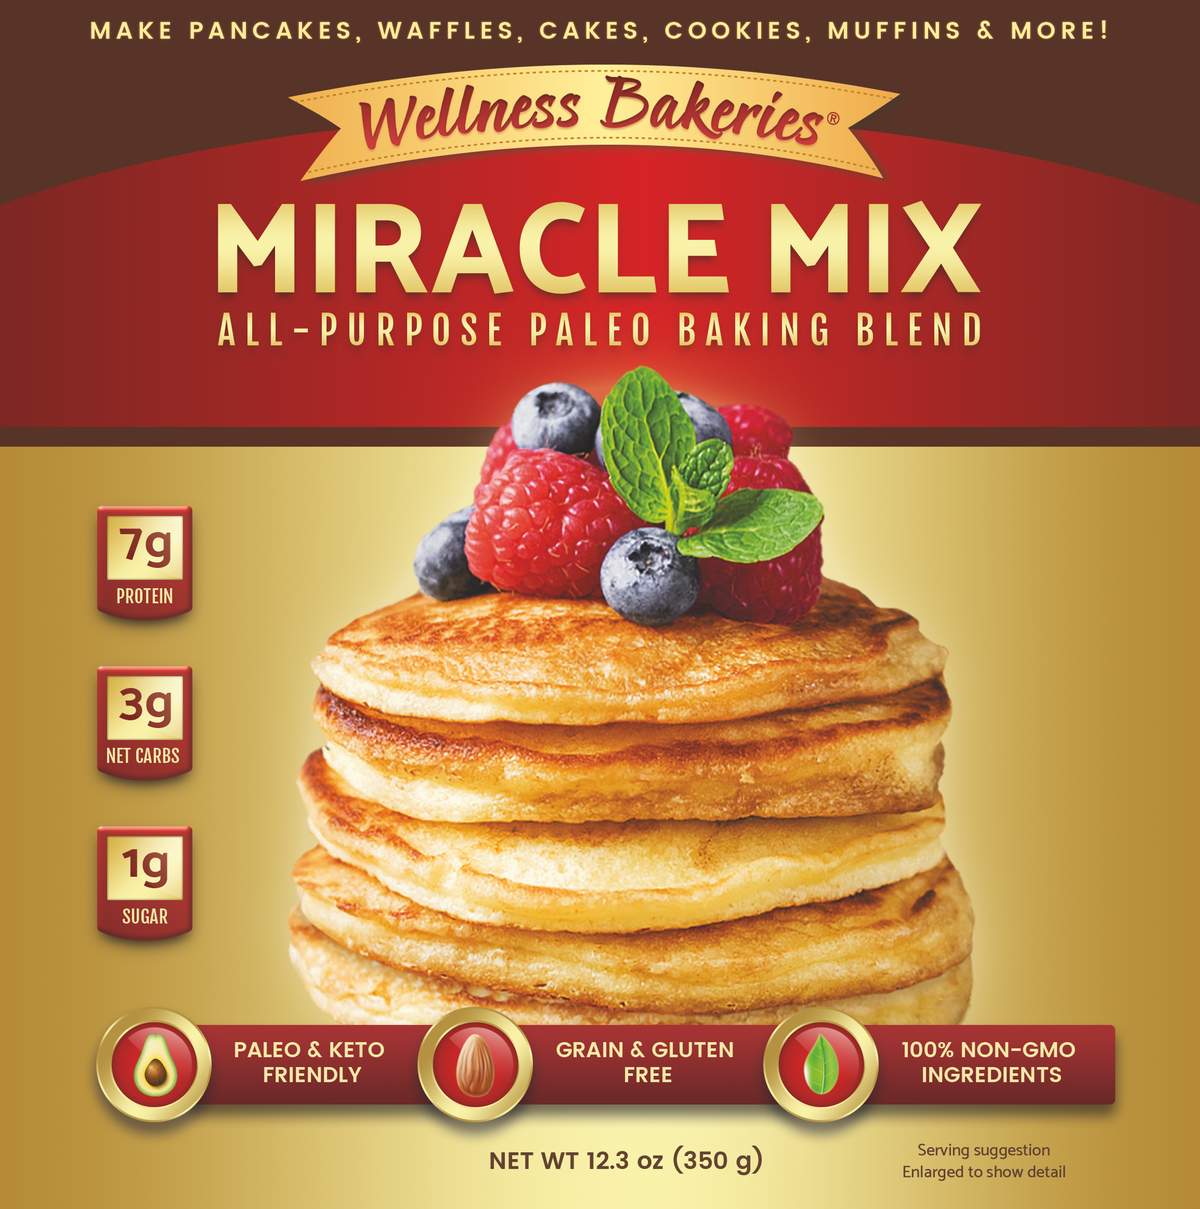 Improve & Finalize Wellness Bakeries Miracle Mix Package